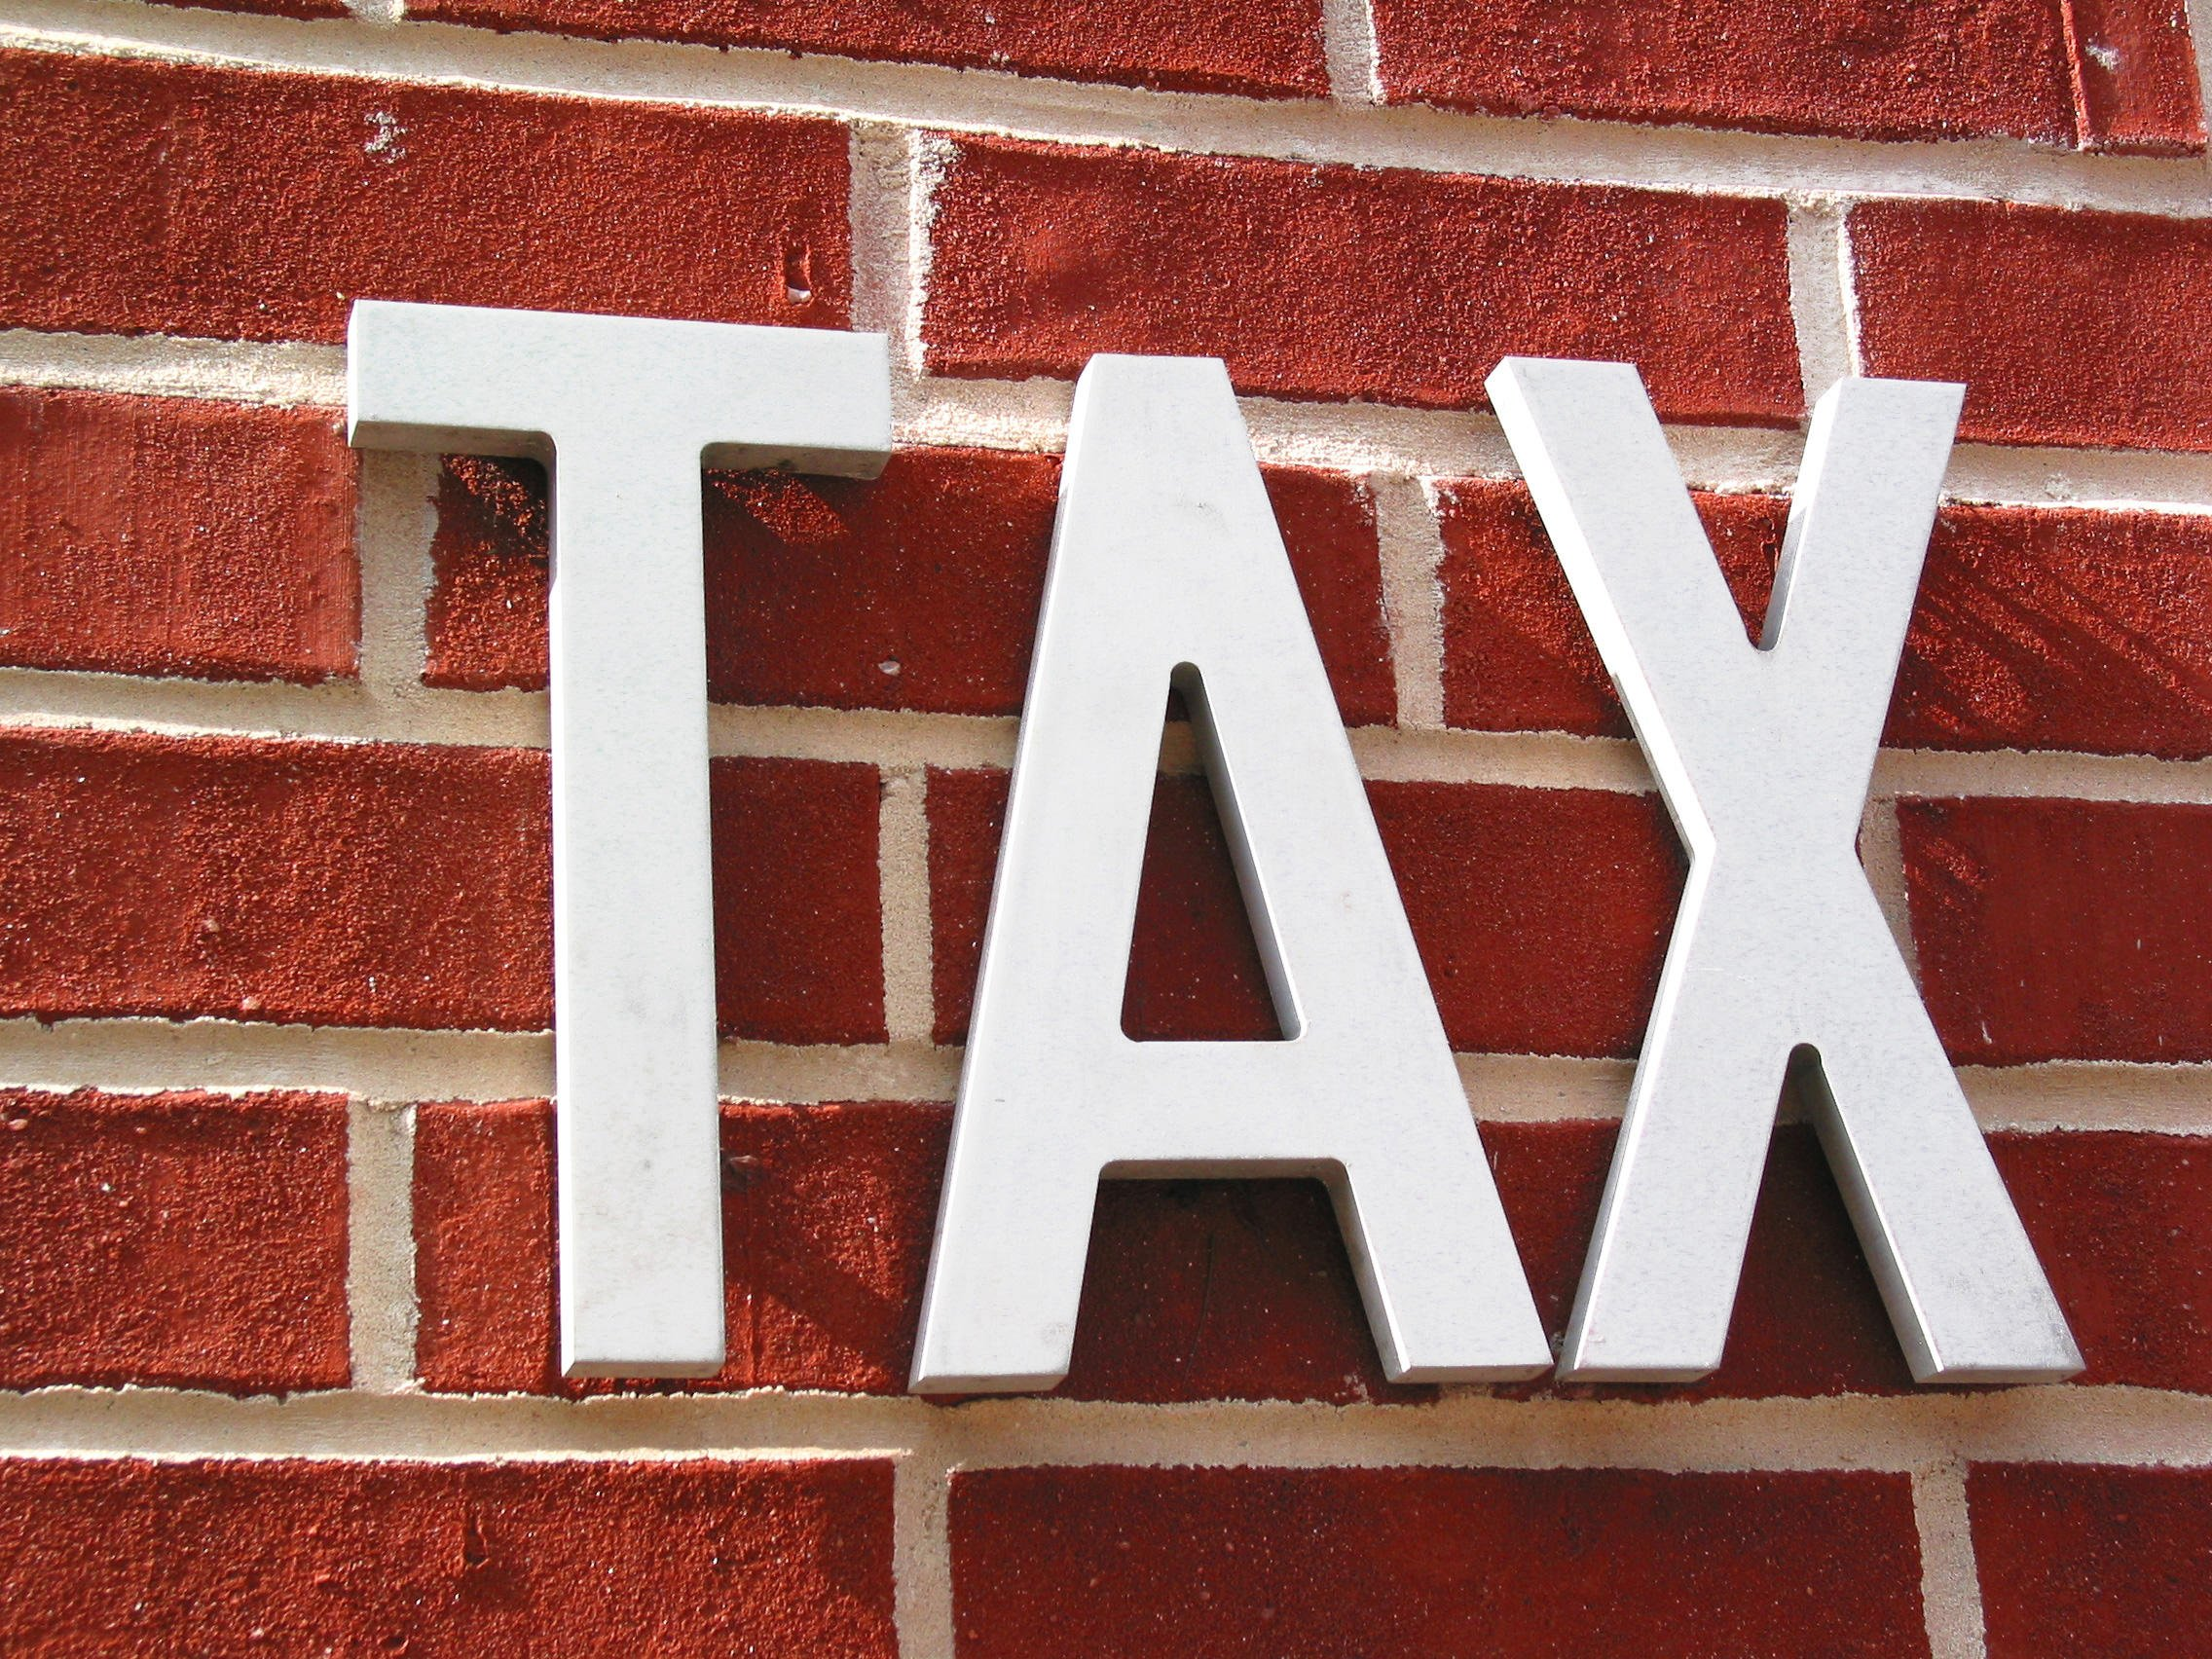 Technology disrupted tax income, but nobody escapes taxes